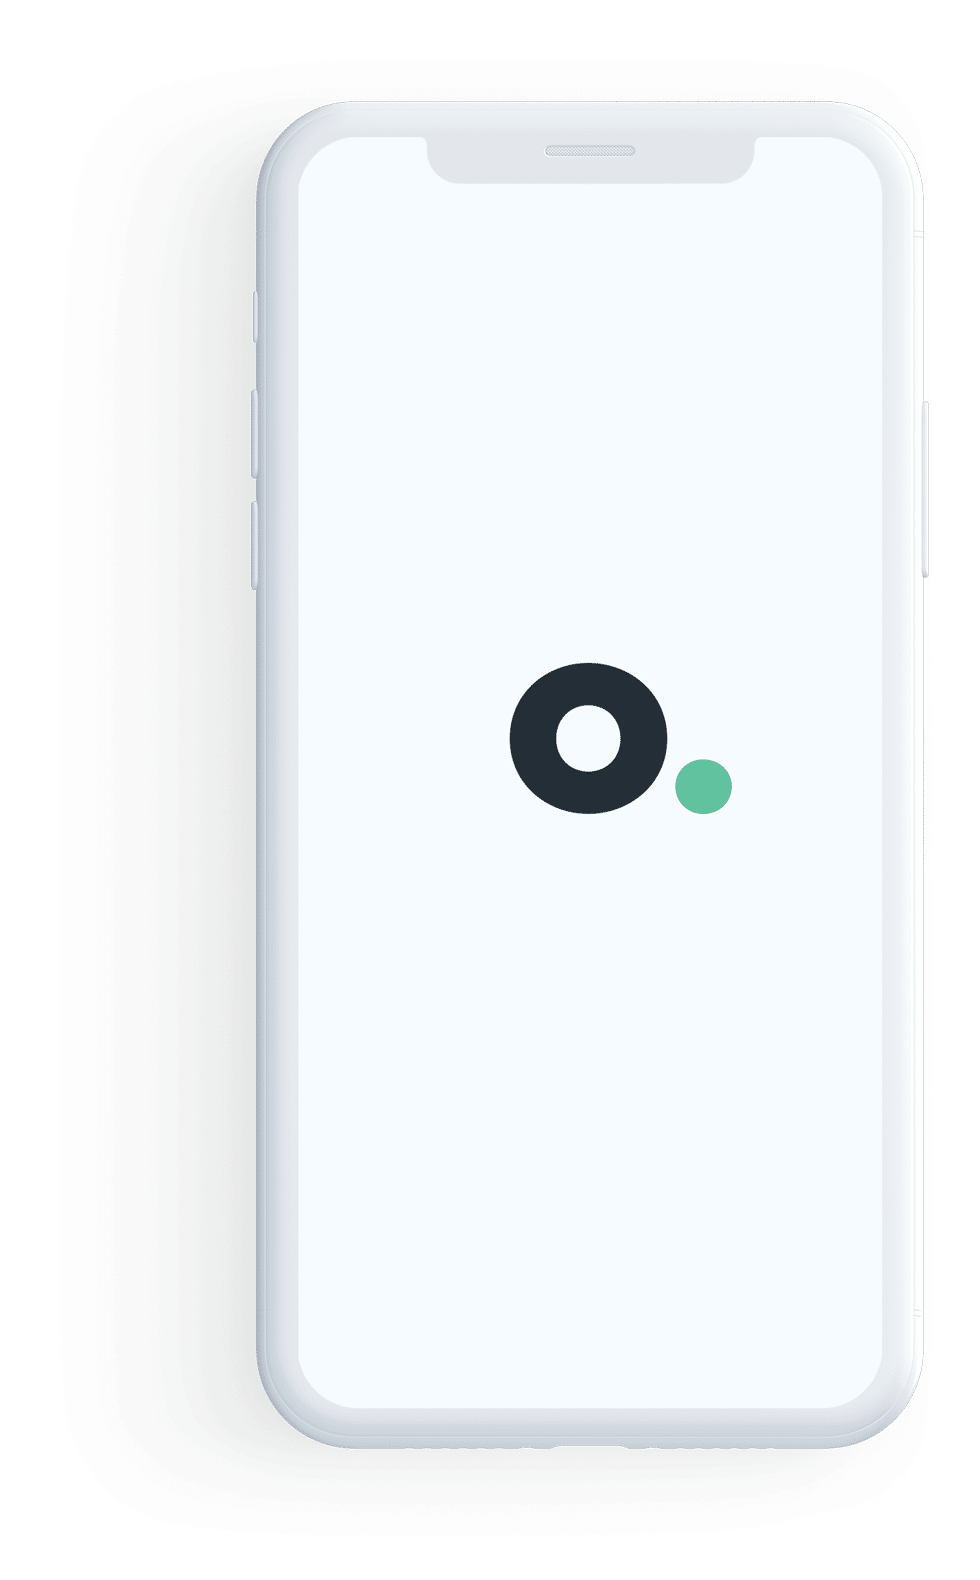 Octave Agency Logo in a Mobile Screen